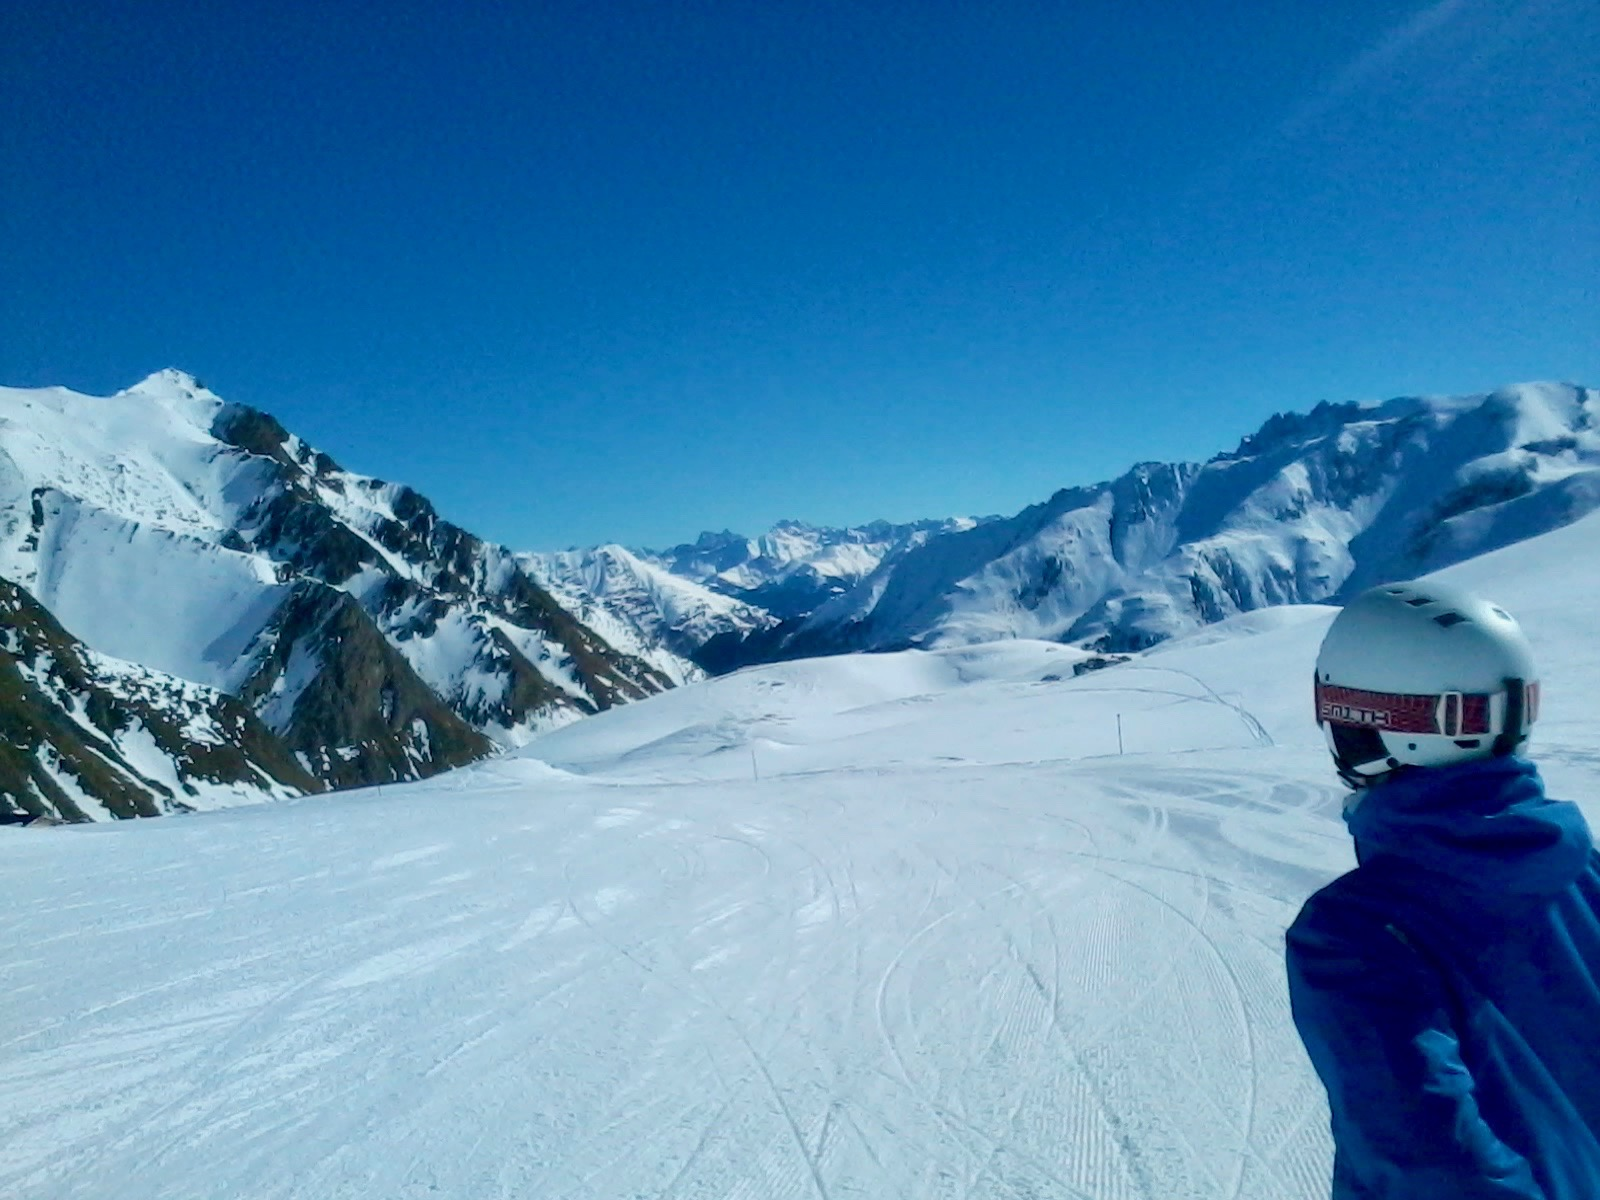 The scene before us as we skied on the Smuggler's Run between Ischgl and Samnaun